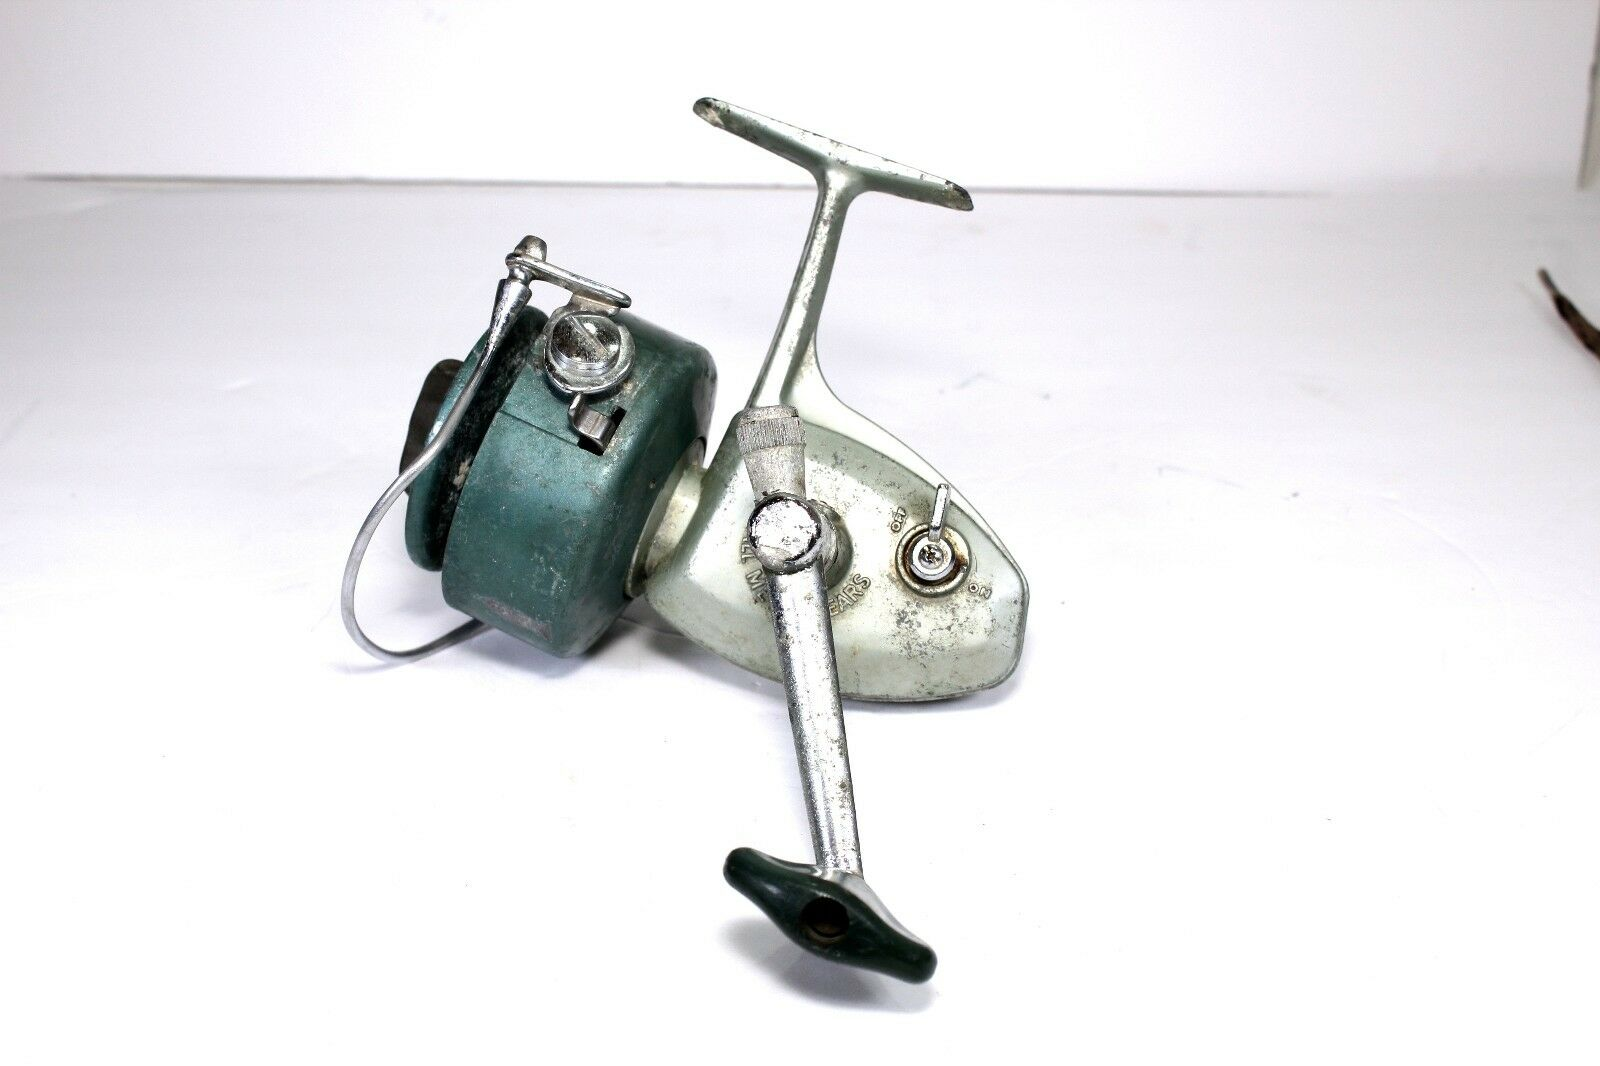 HEDDON VINTAGE SPINNING REEL  USA ASSEMBLED  BY  DAISY&HEDDON  cheap store